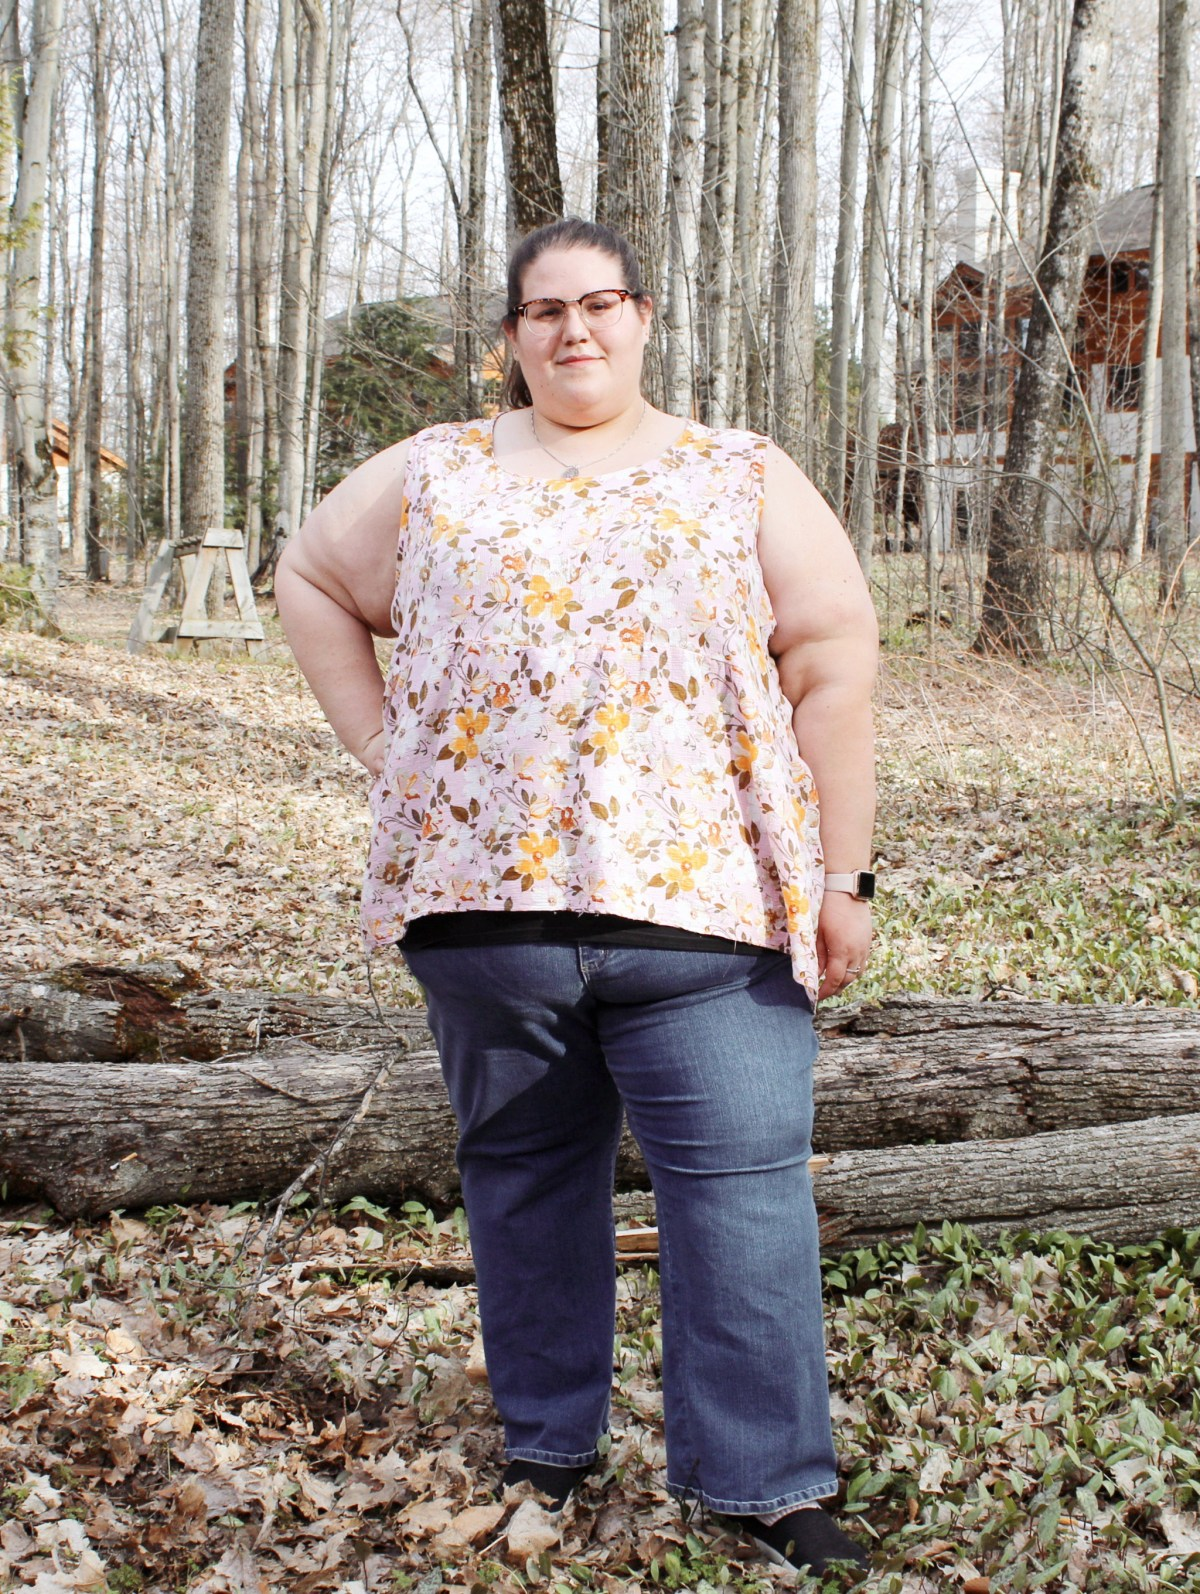 Jenn stands in front of three large tree limbs on leaf-covered ground; more trees and a house are behind her. She looks at the camera and smiles slightly, with her right hand on her hip. She wears blue jeans and a pink and yellow floral sleeveless top with a gathered lower bodice.